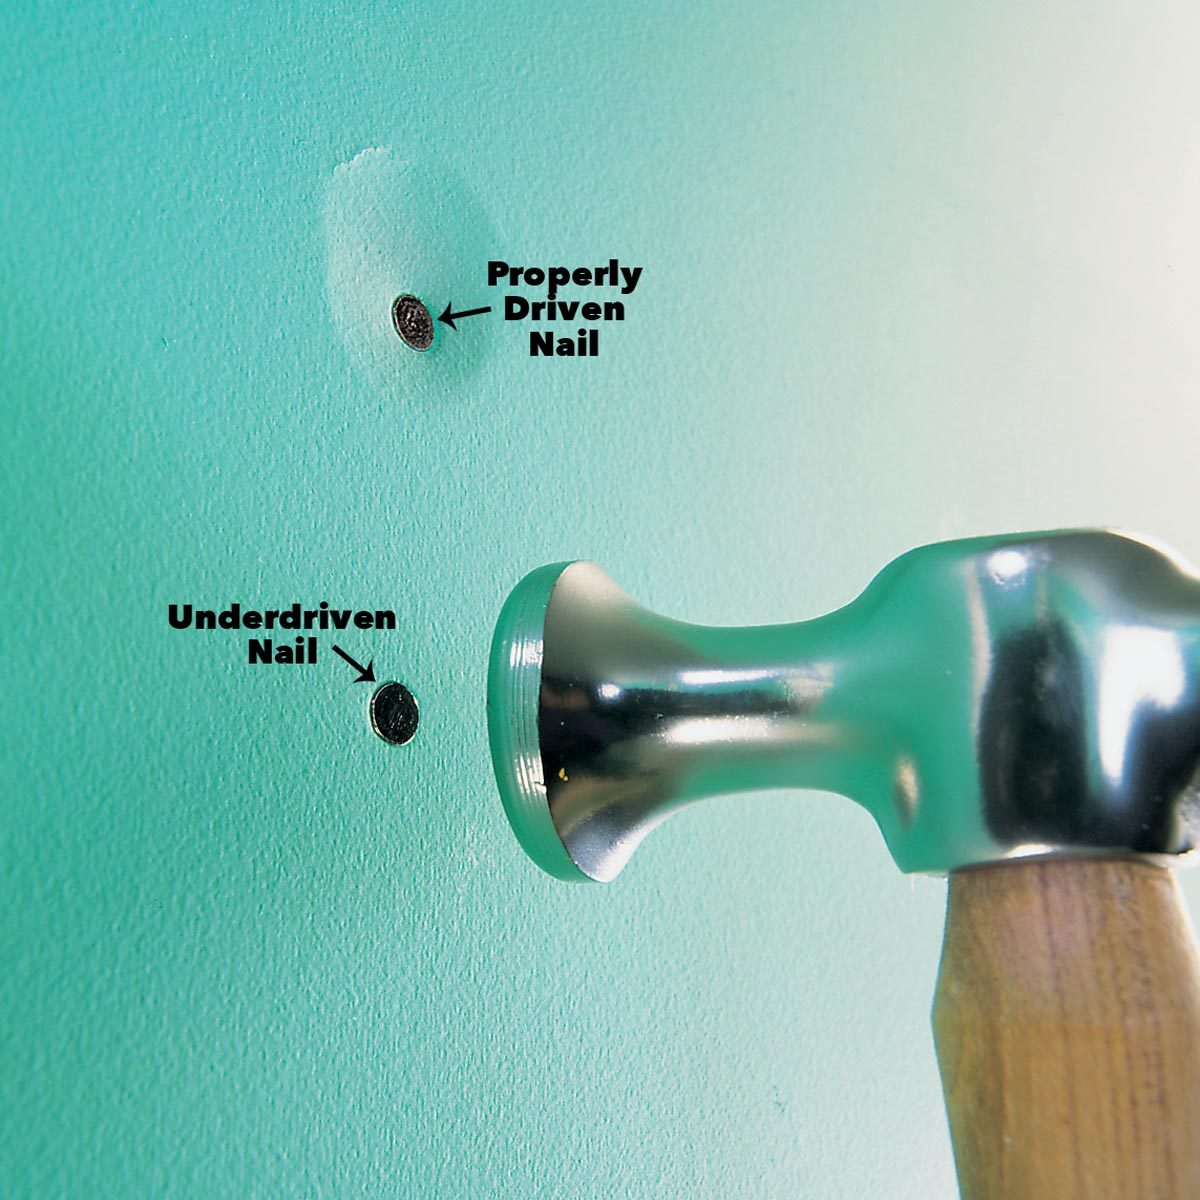 Tap nails slightly below the drywall face